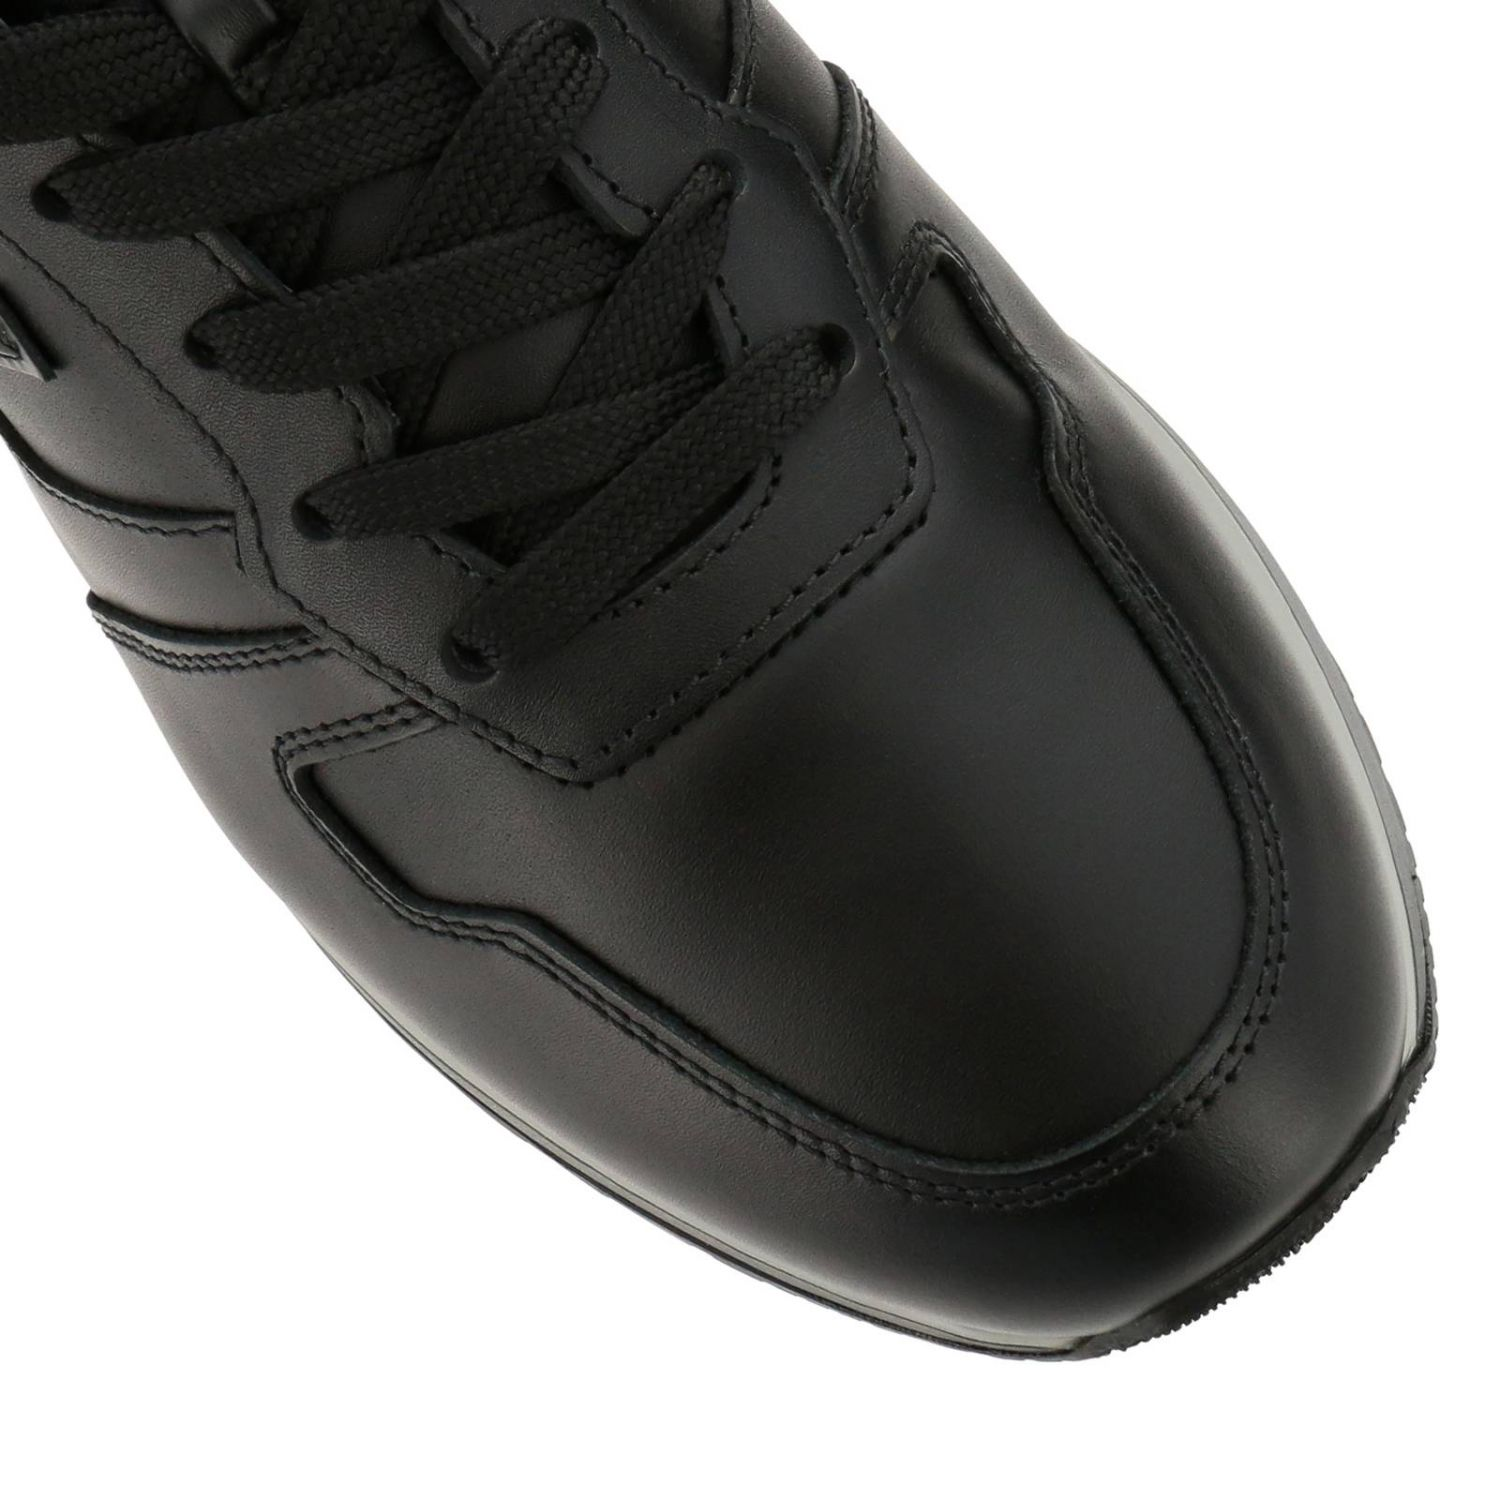 Sneakers Rebel 321 in pelle con H in 3D nero 3